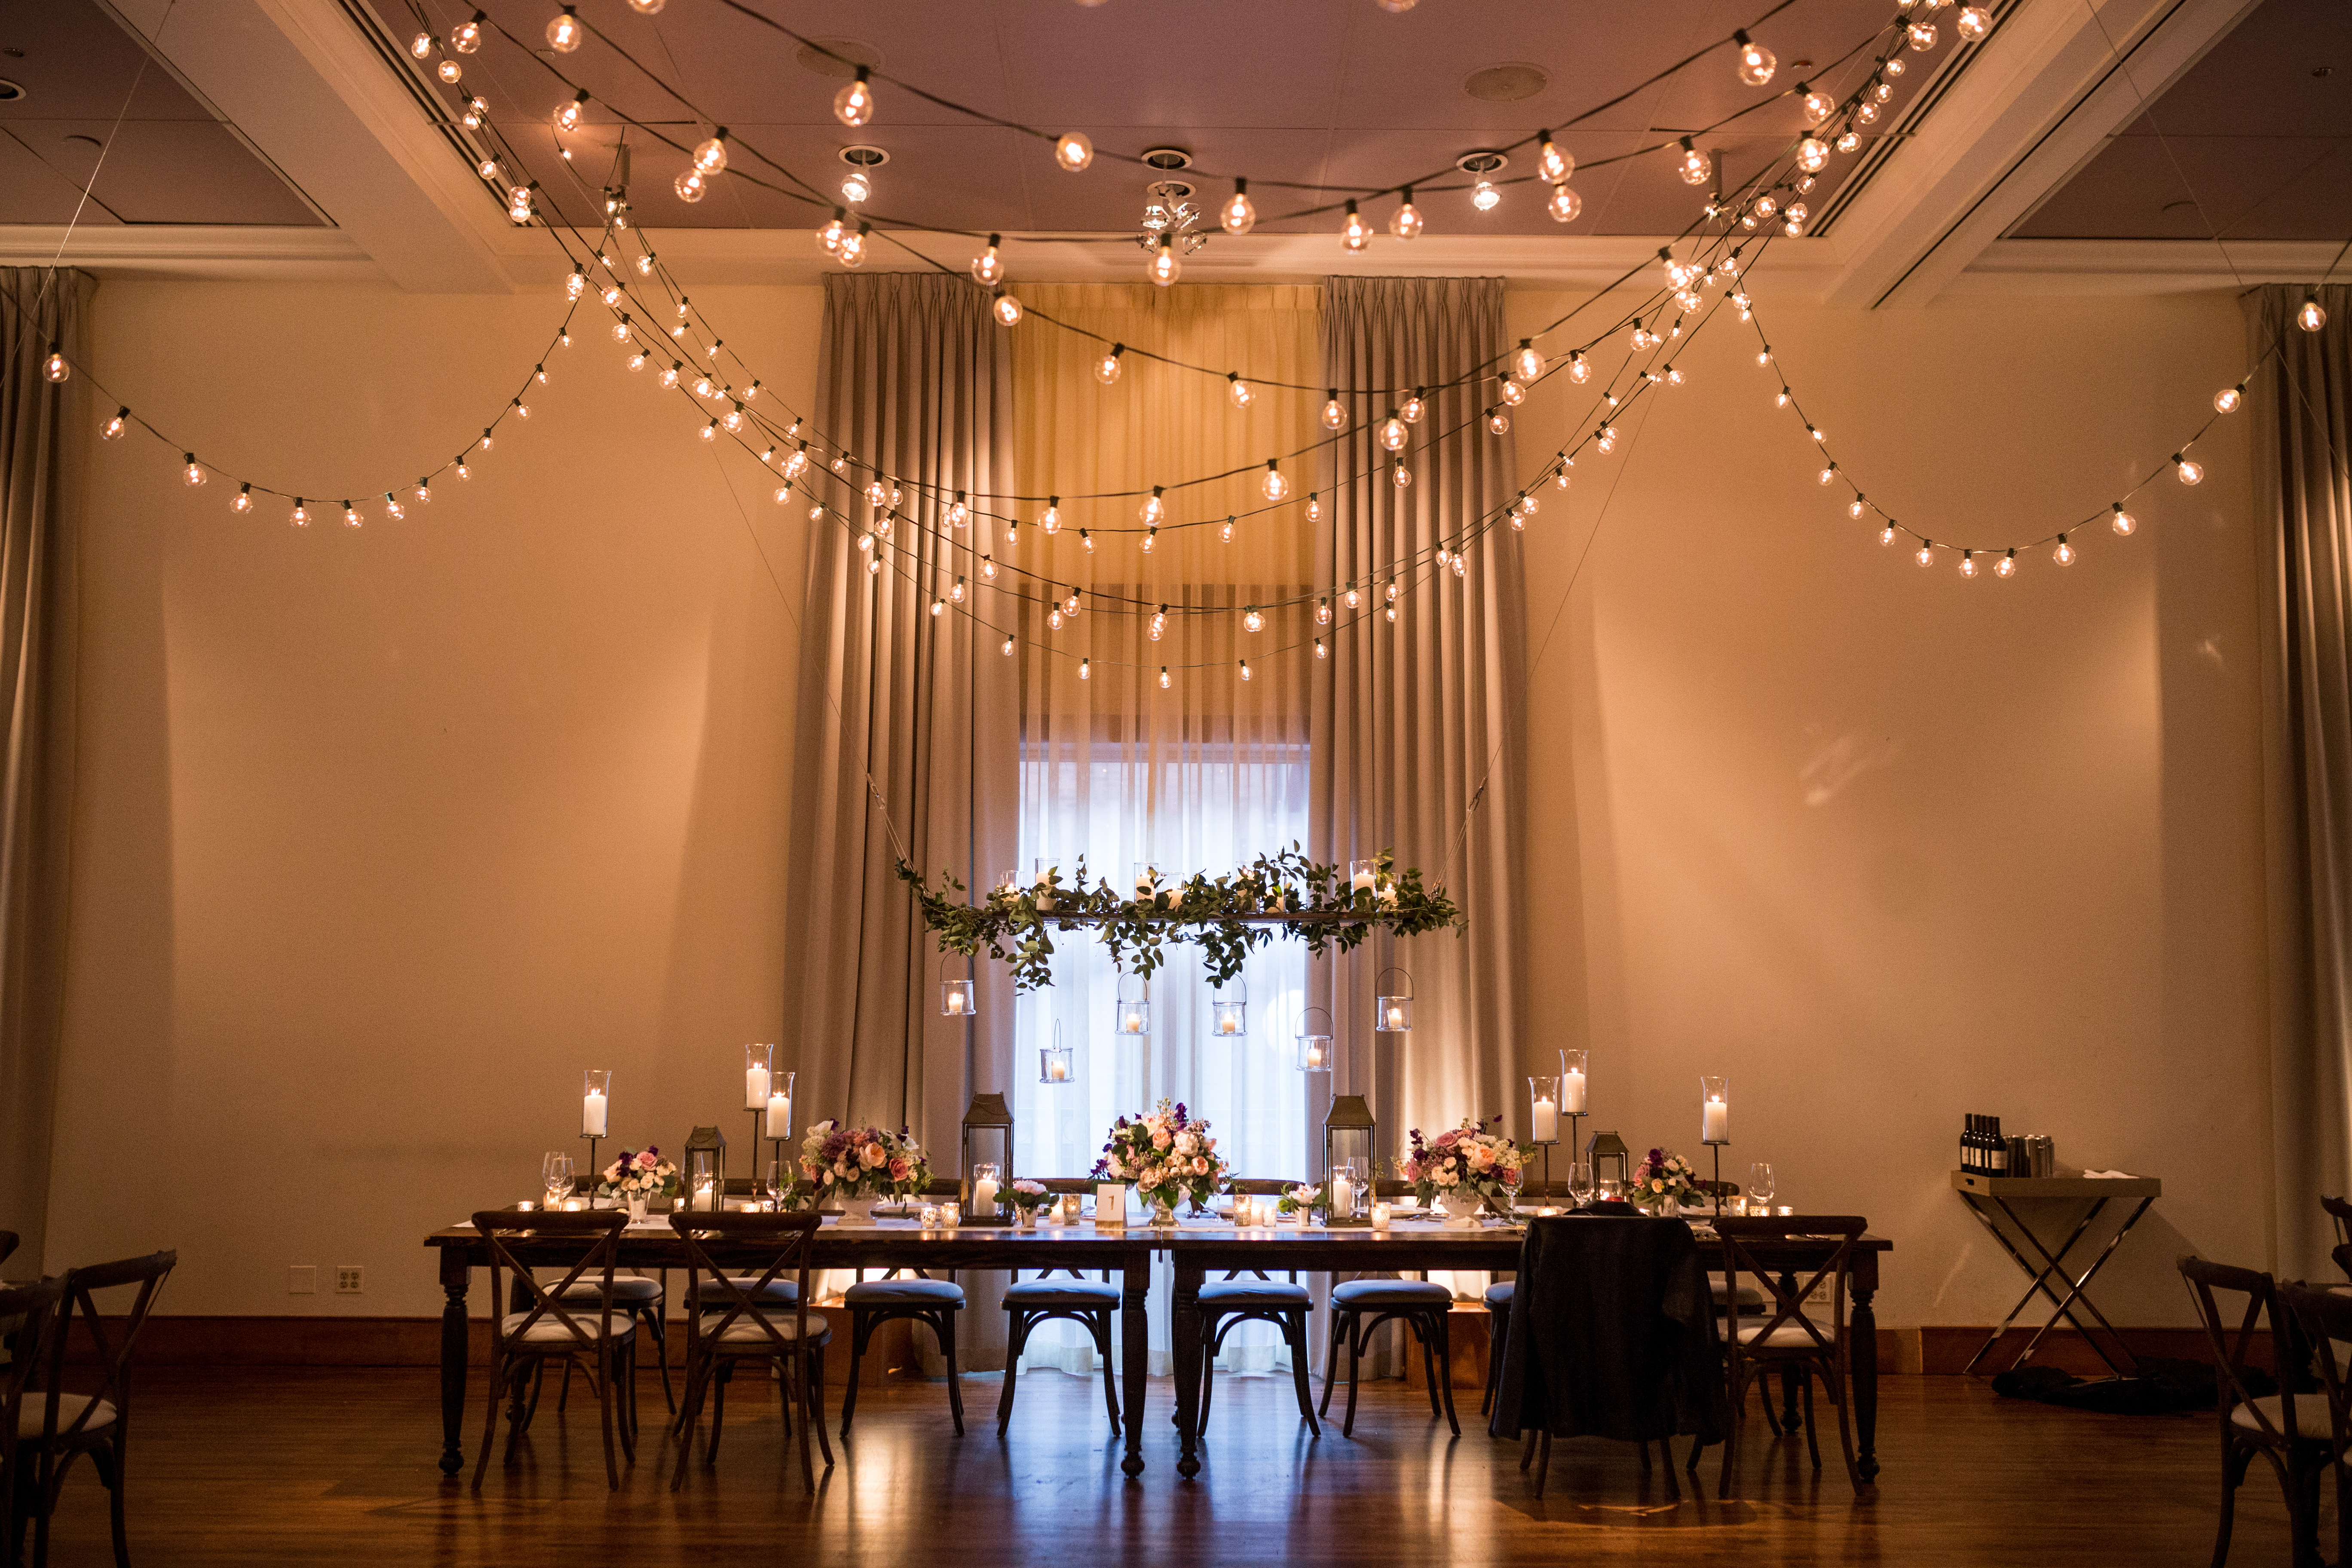 Ivy Room Weddings - The Ivy Room